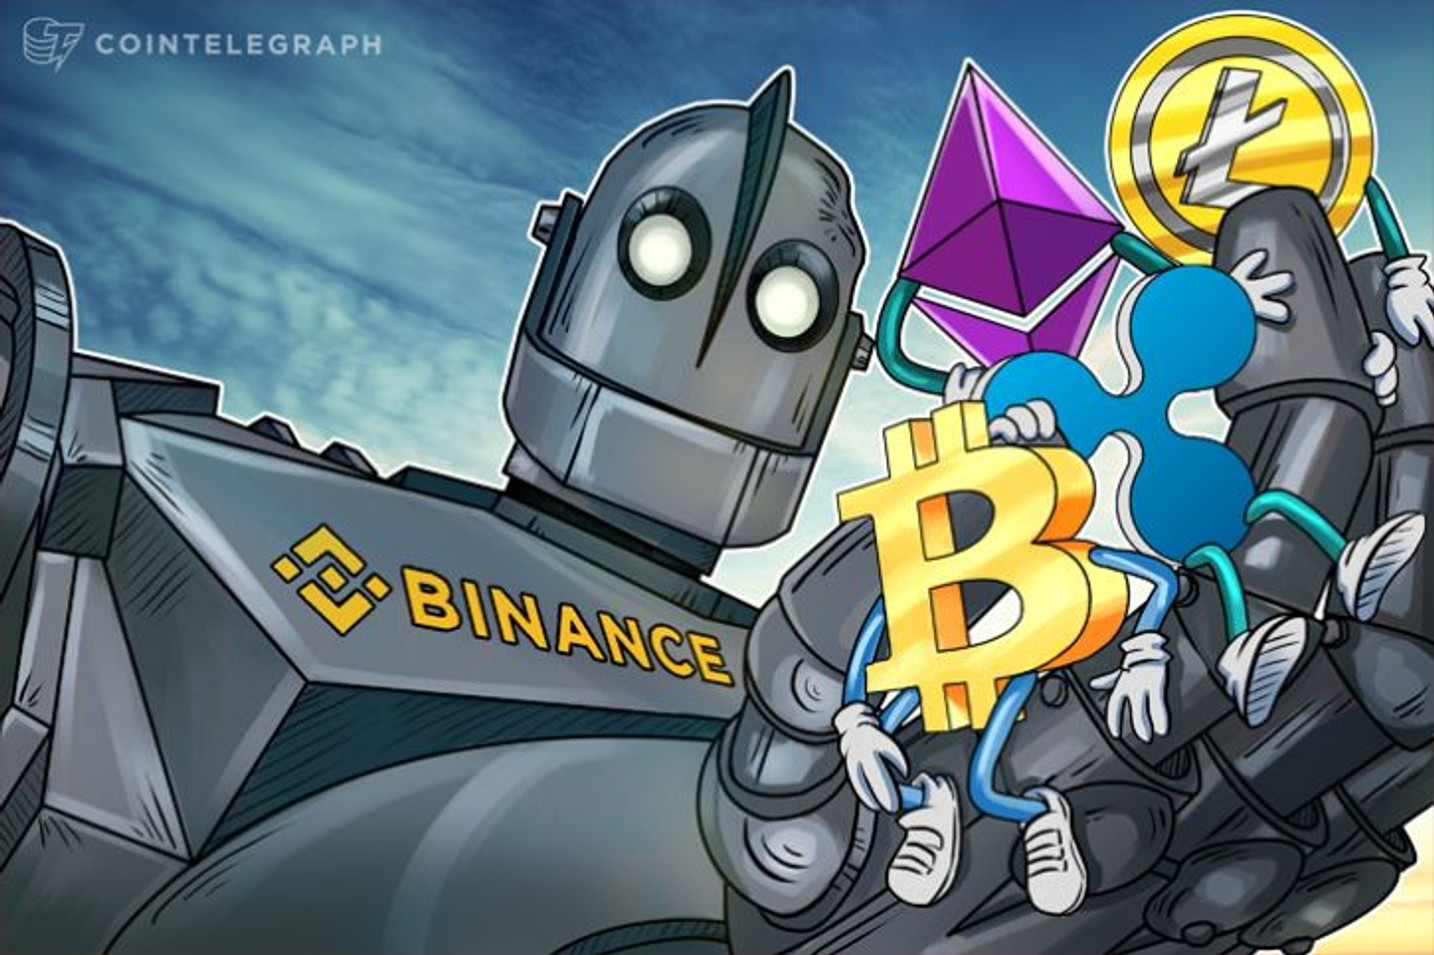 Bitcoin Loses $9k Support After Binance Confusion Shakes Confidence